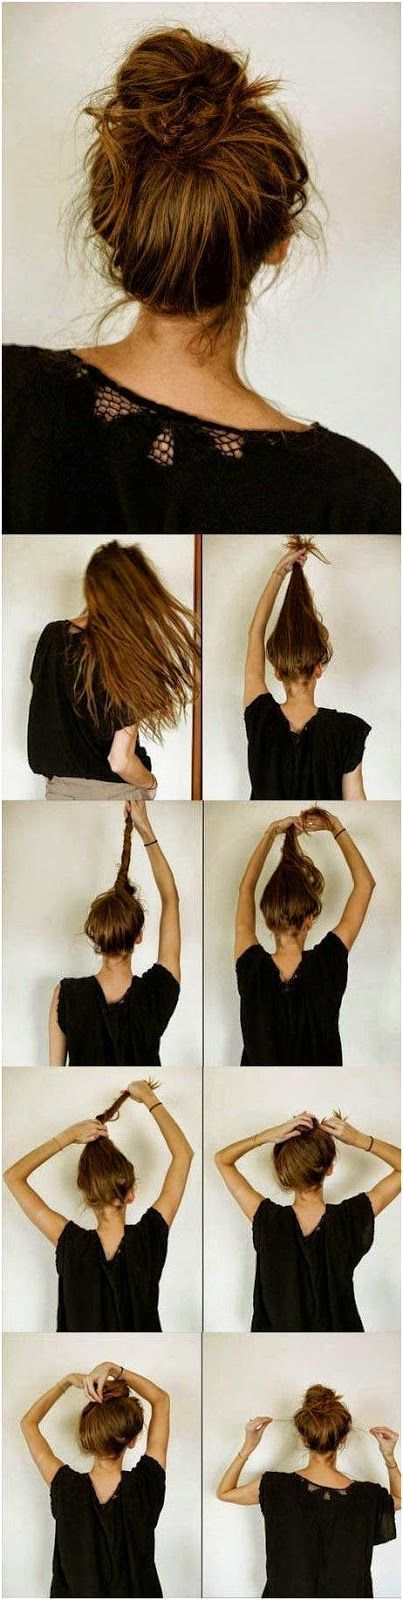 5 Minuten Locken. Pretty Hair Tutorials für den Sommer #HairTutorials